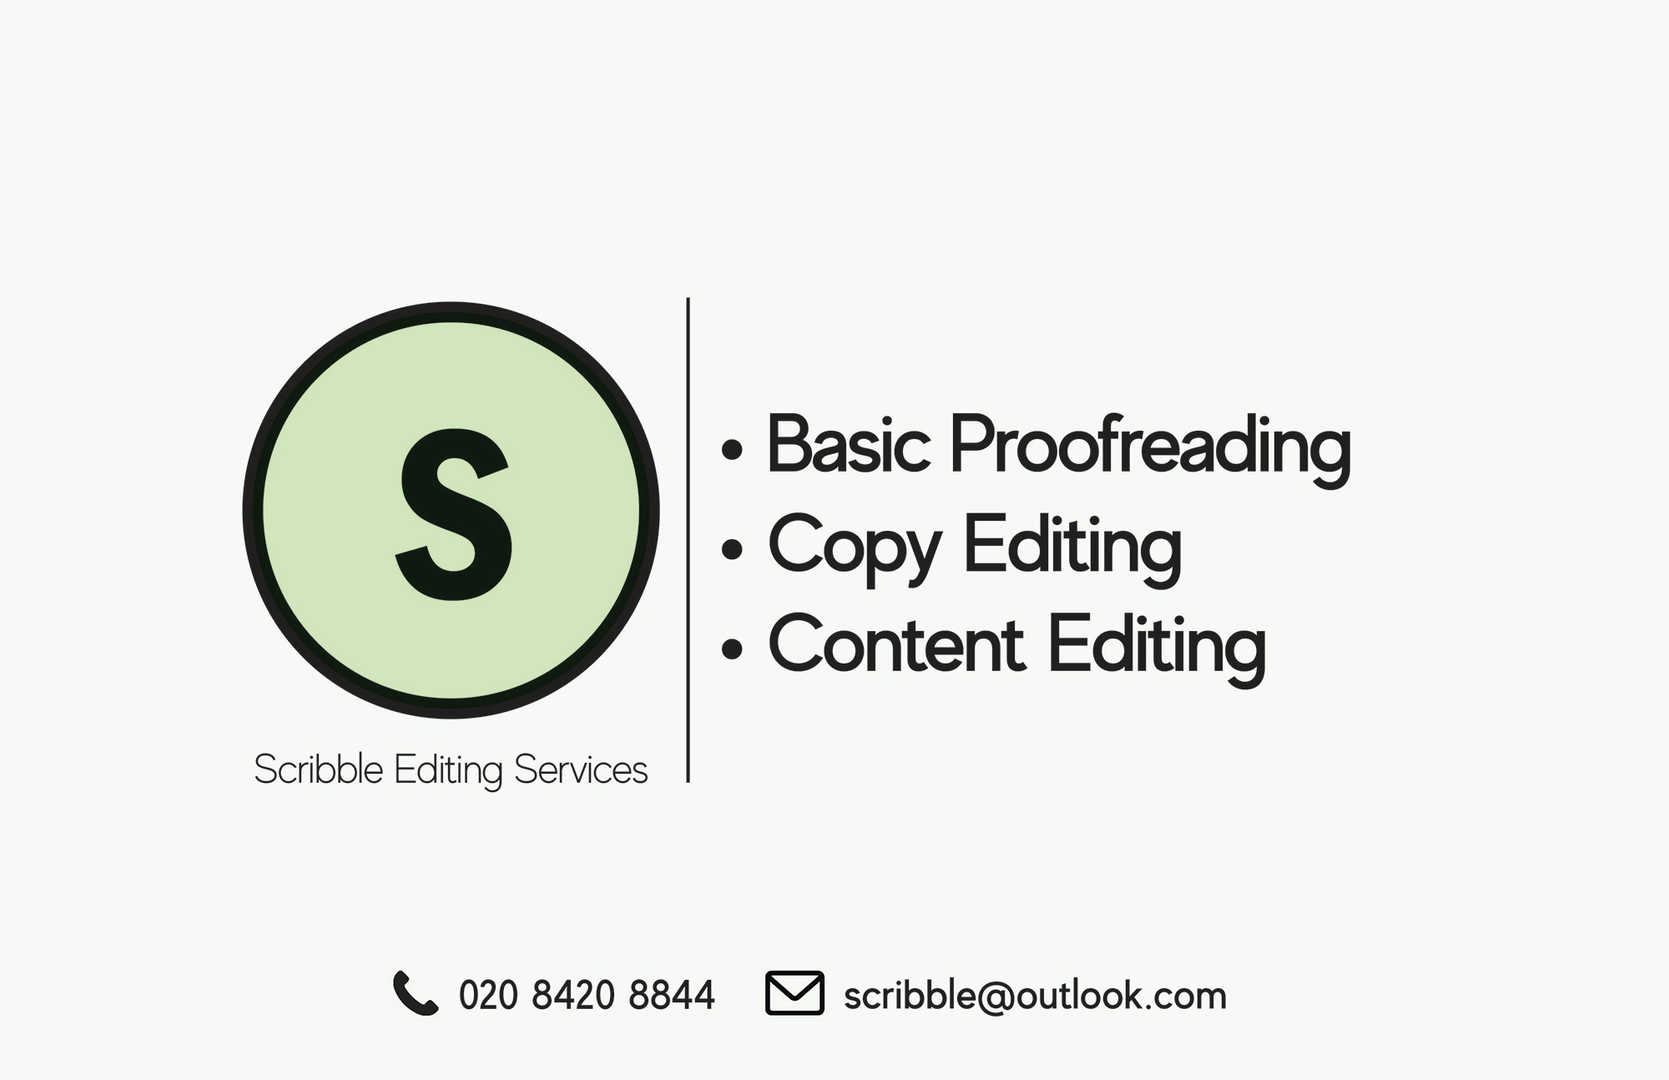 Scribble Editing Services Business Card